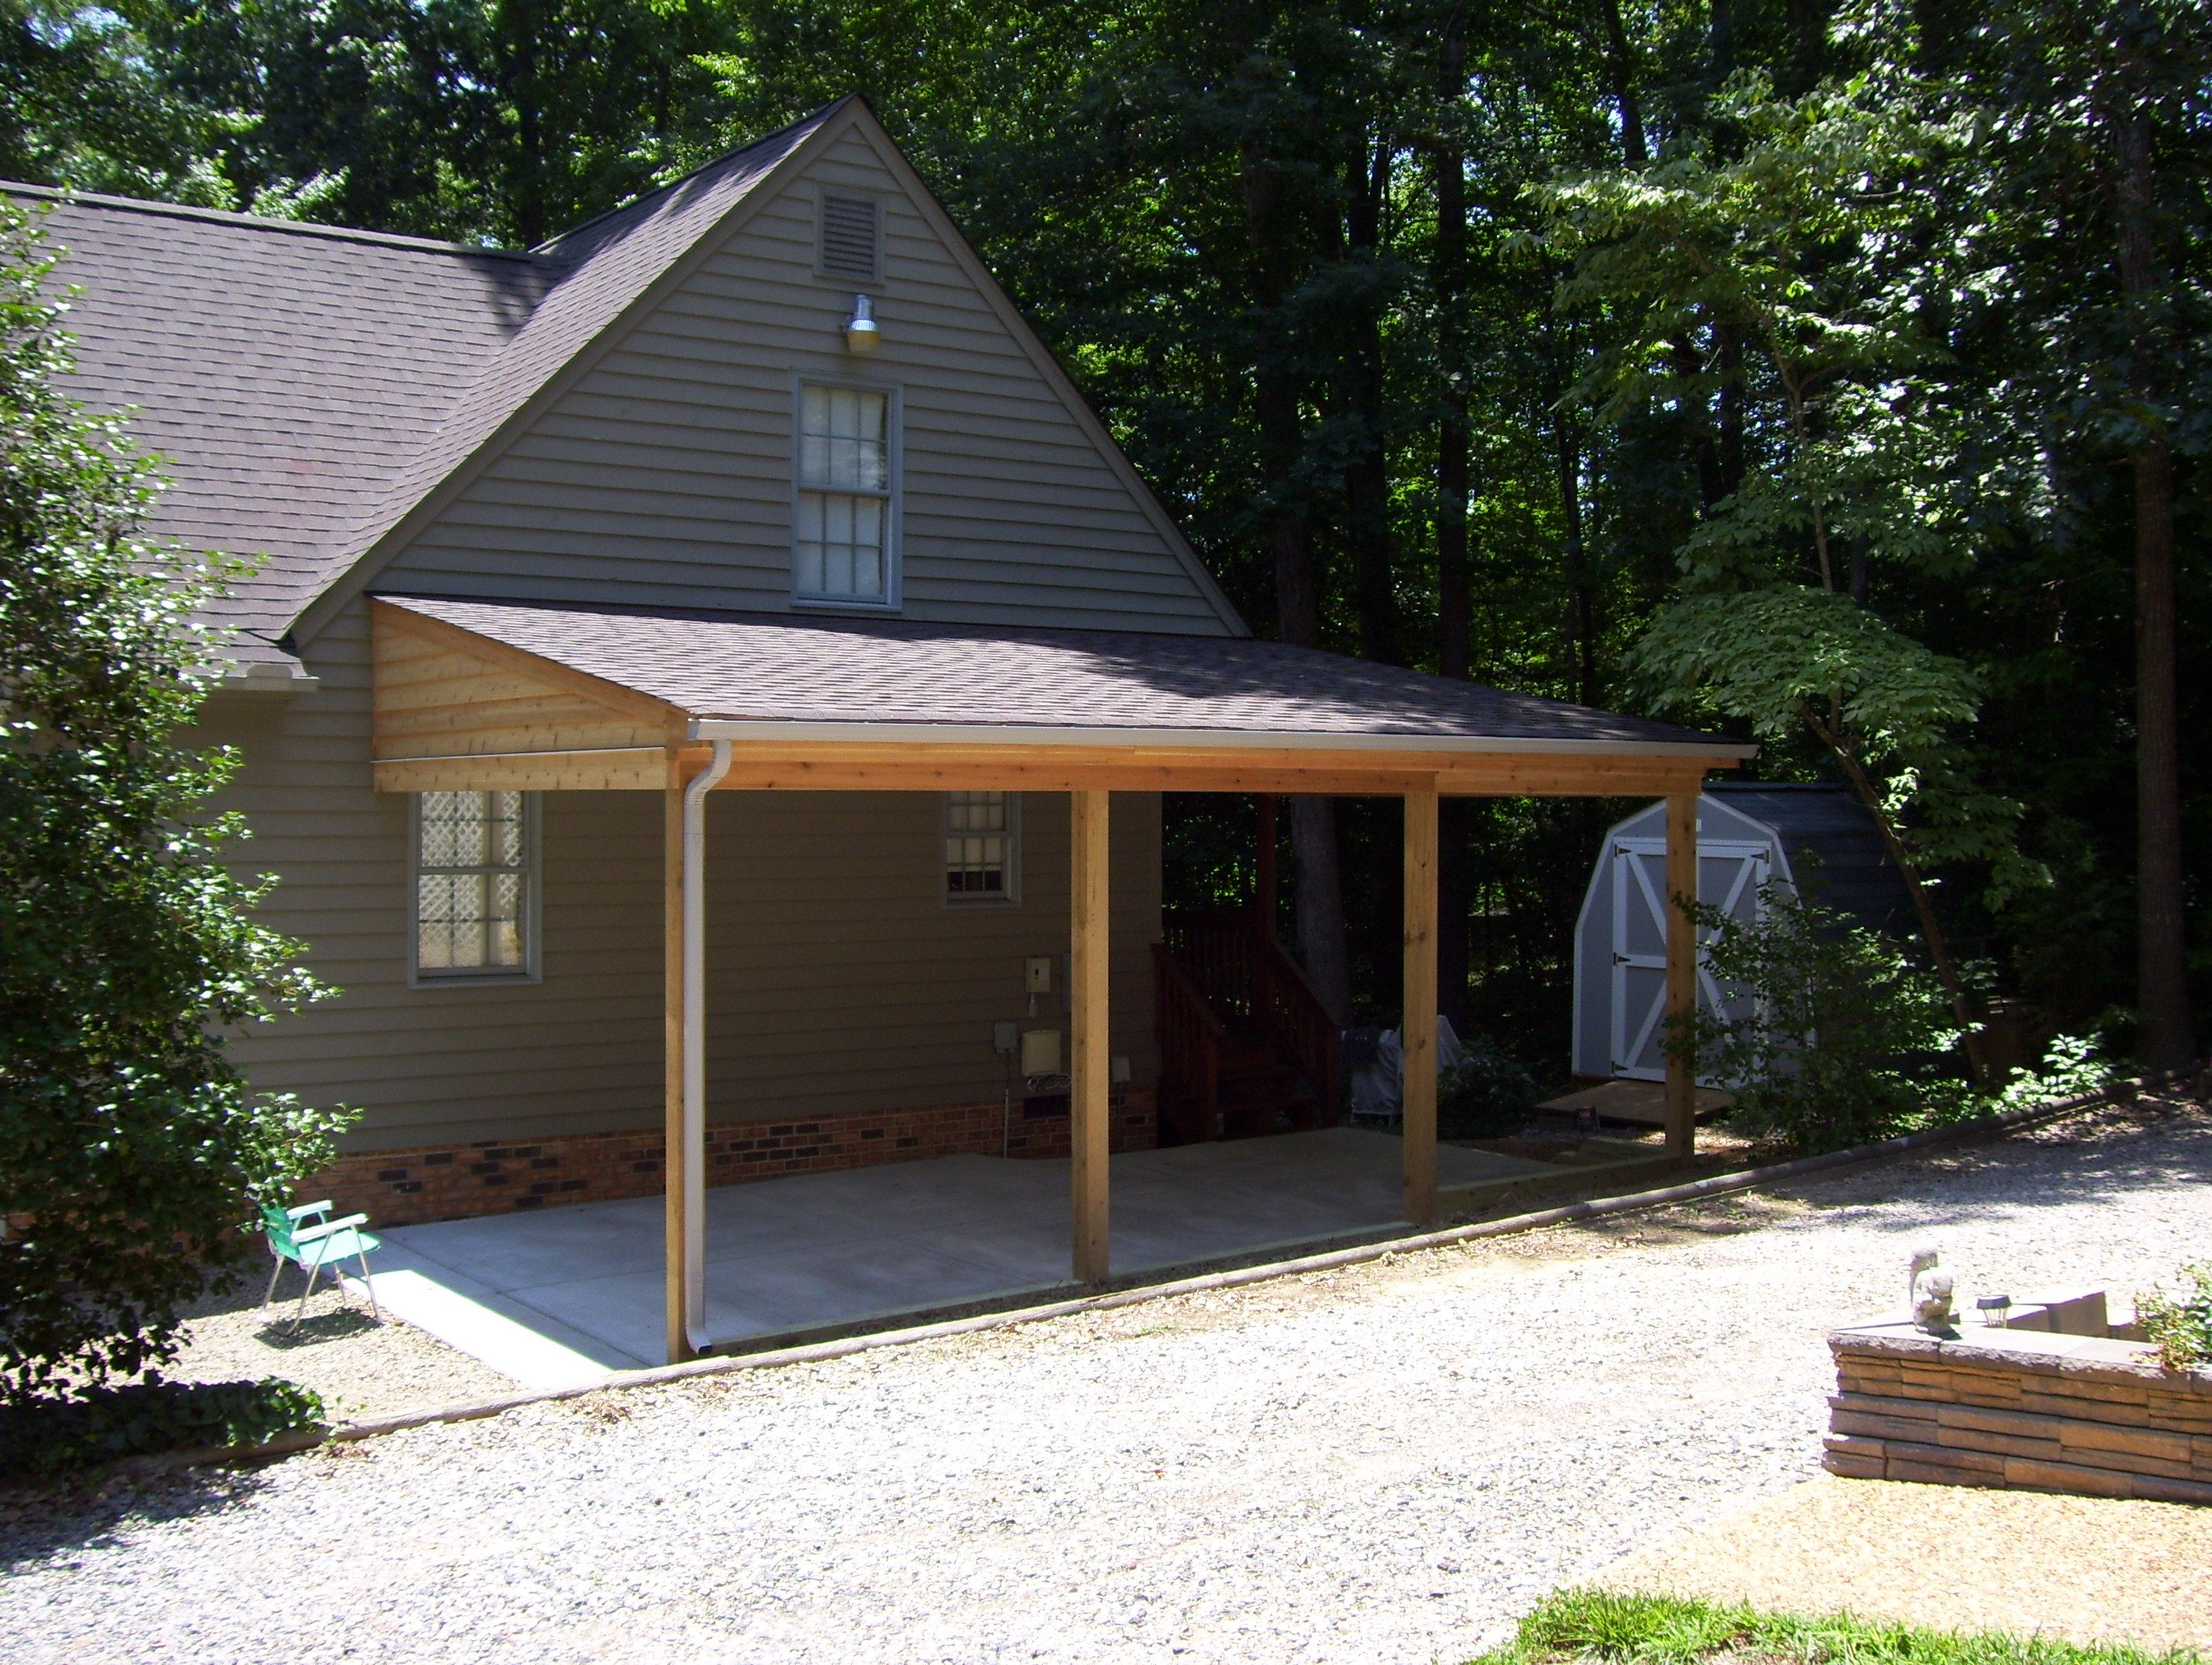 Attached carport photos house remodel pinterest for Garage with carport plans